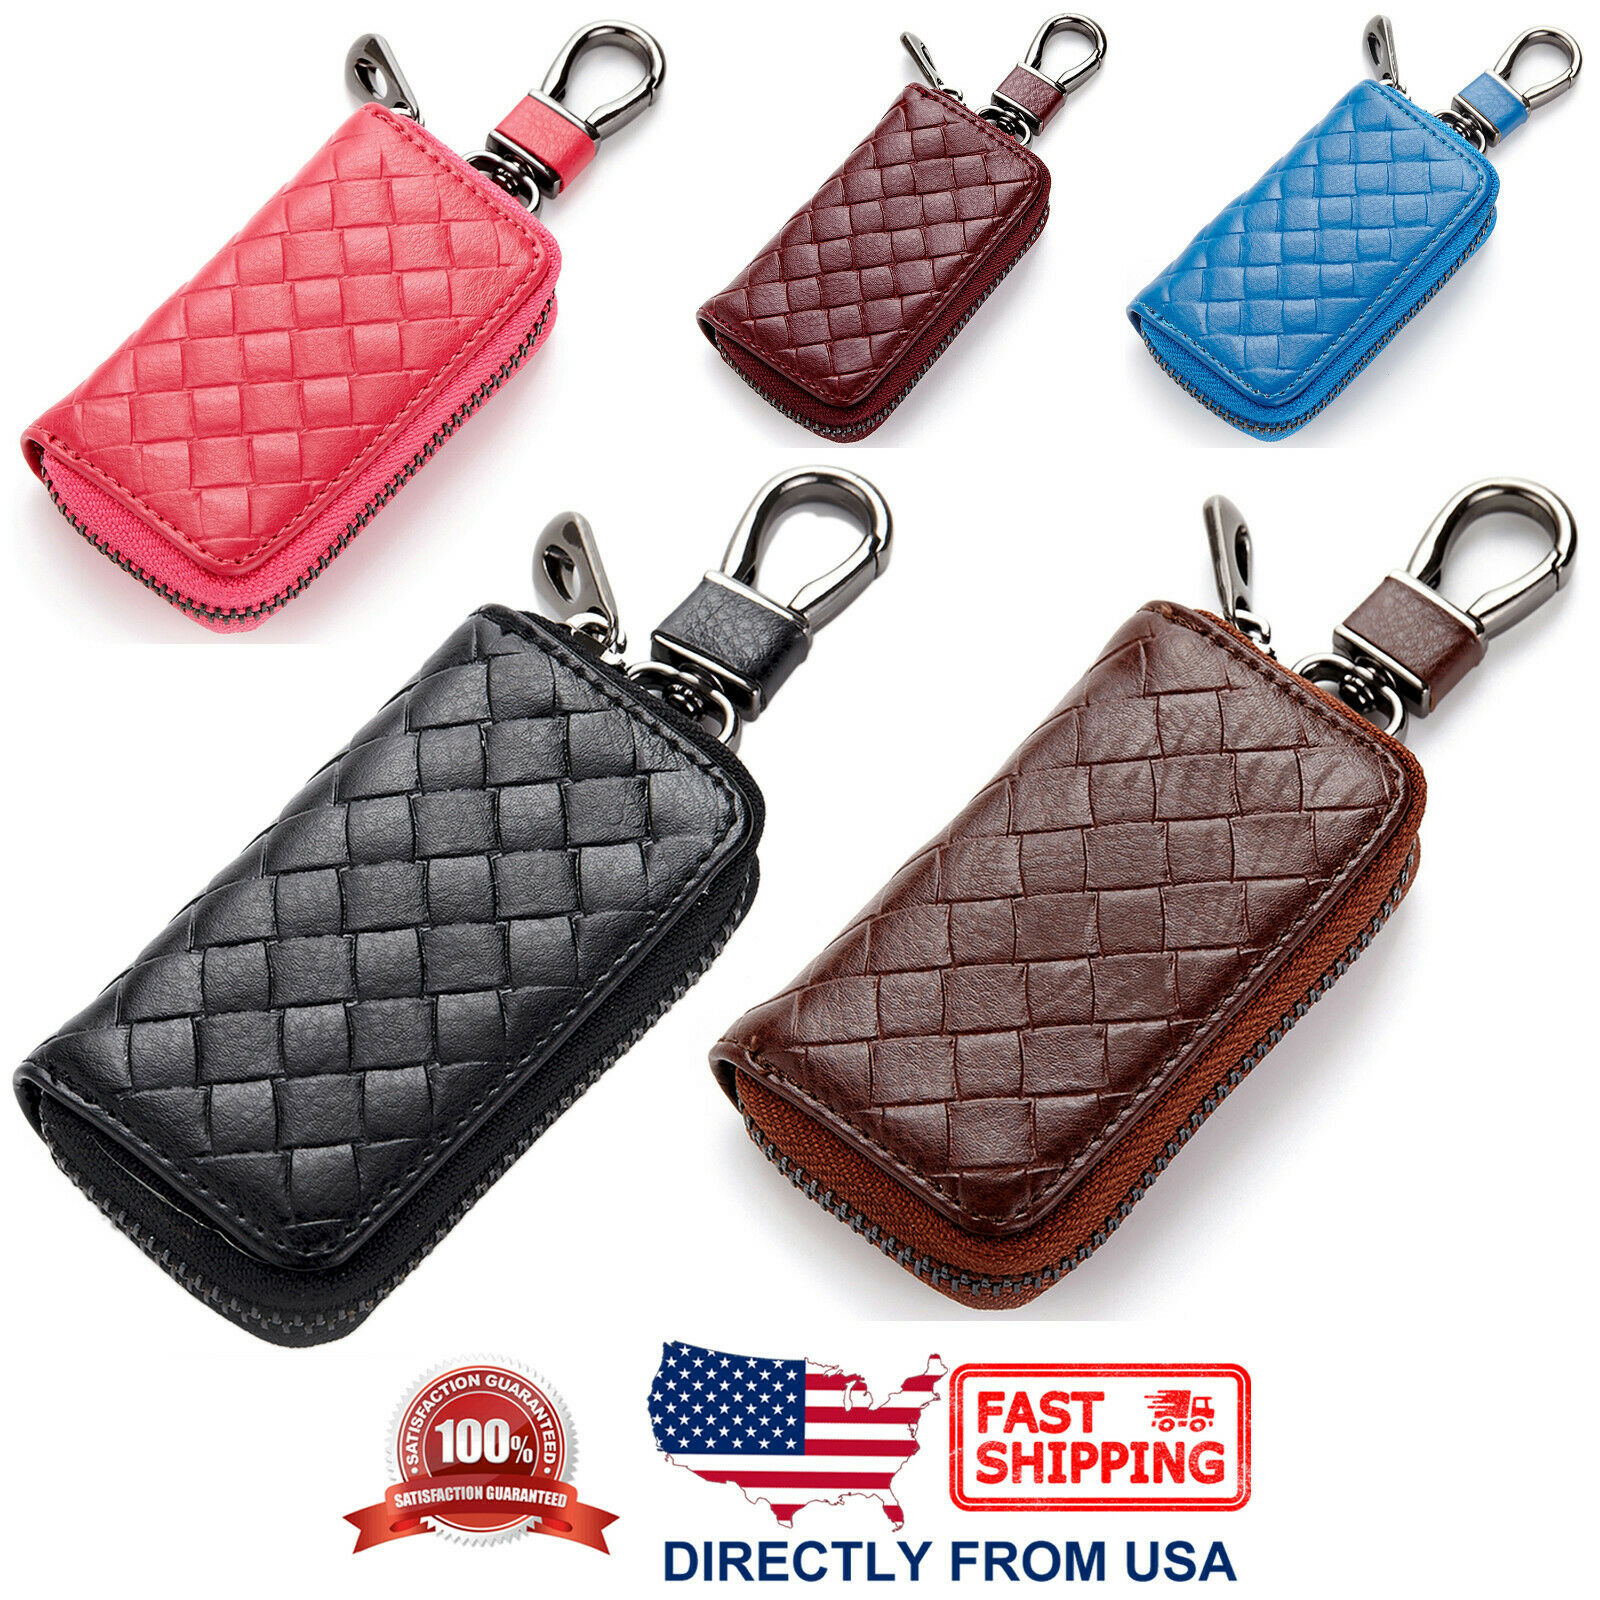 Unisex Universal Genuine Braided Leather Car Key Zipper Case with Key Ring Clothing, Shoes & Accessories